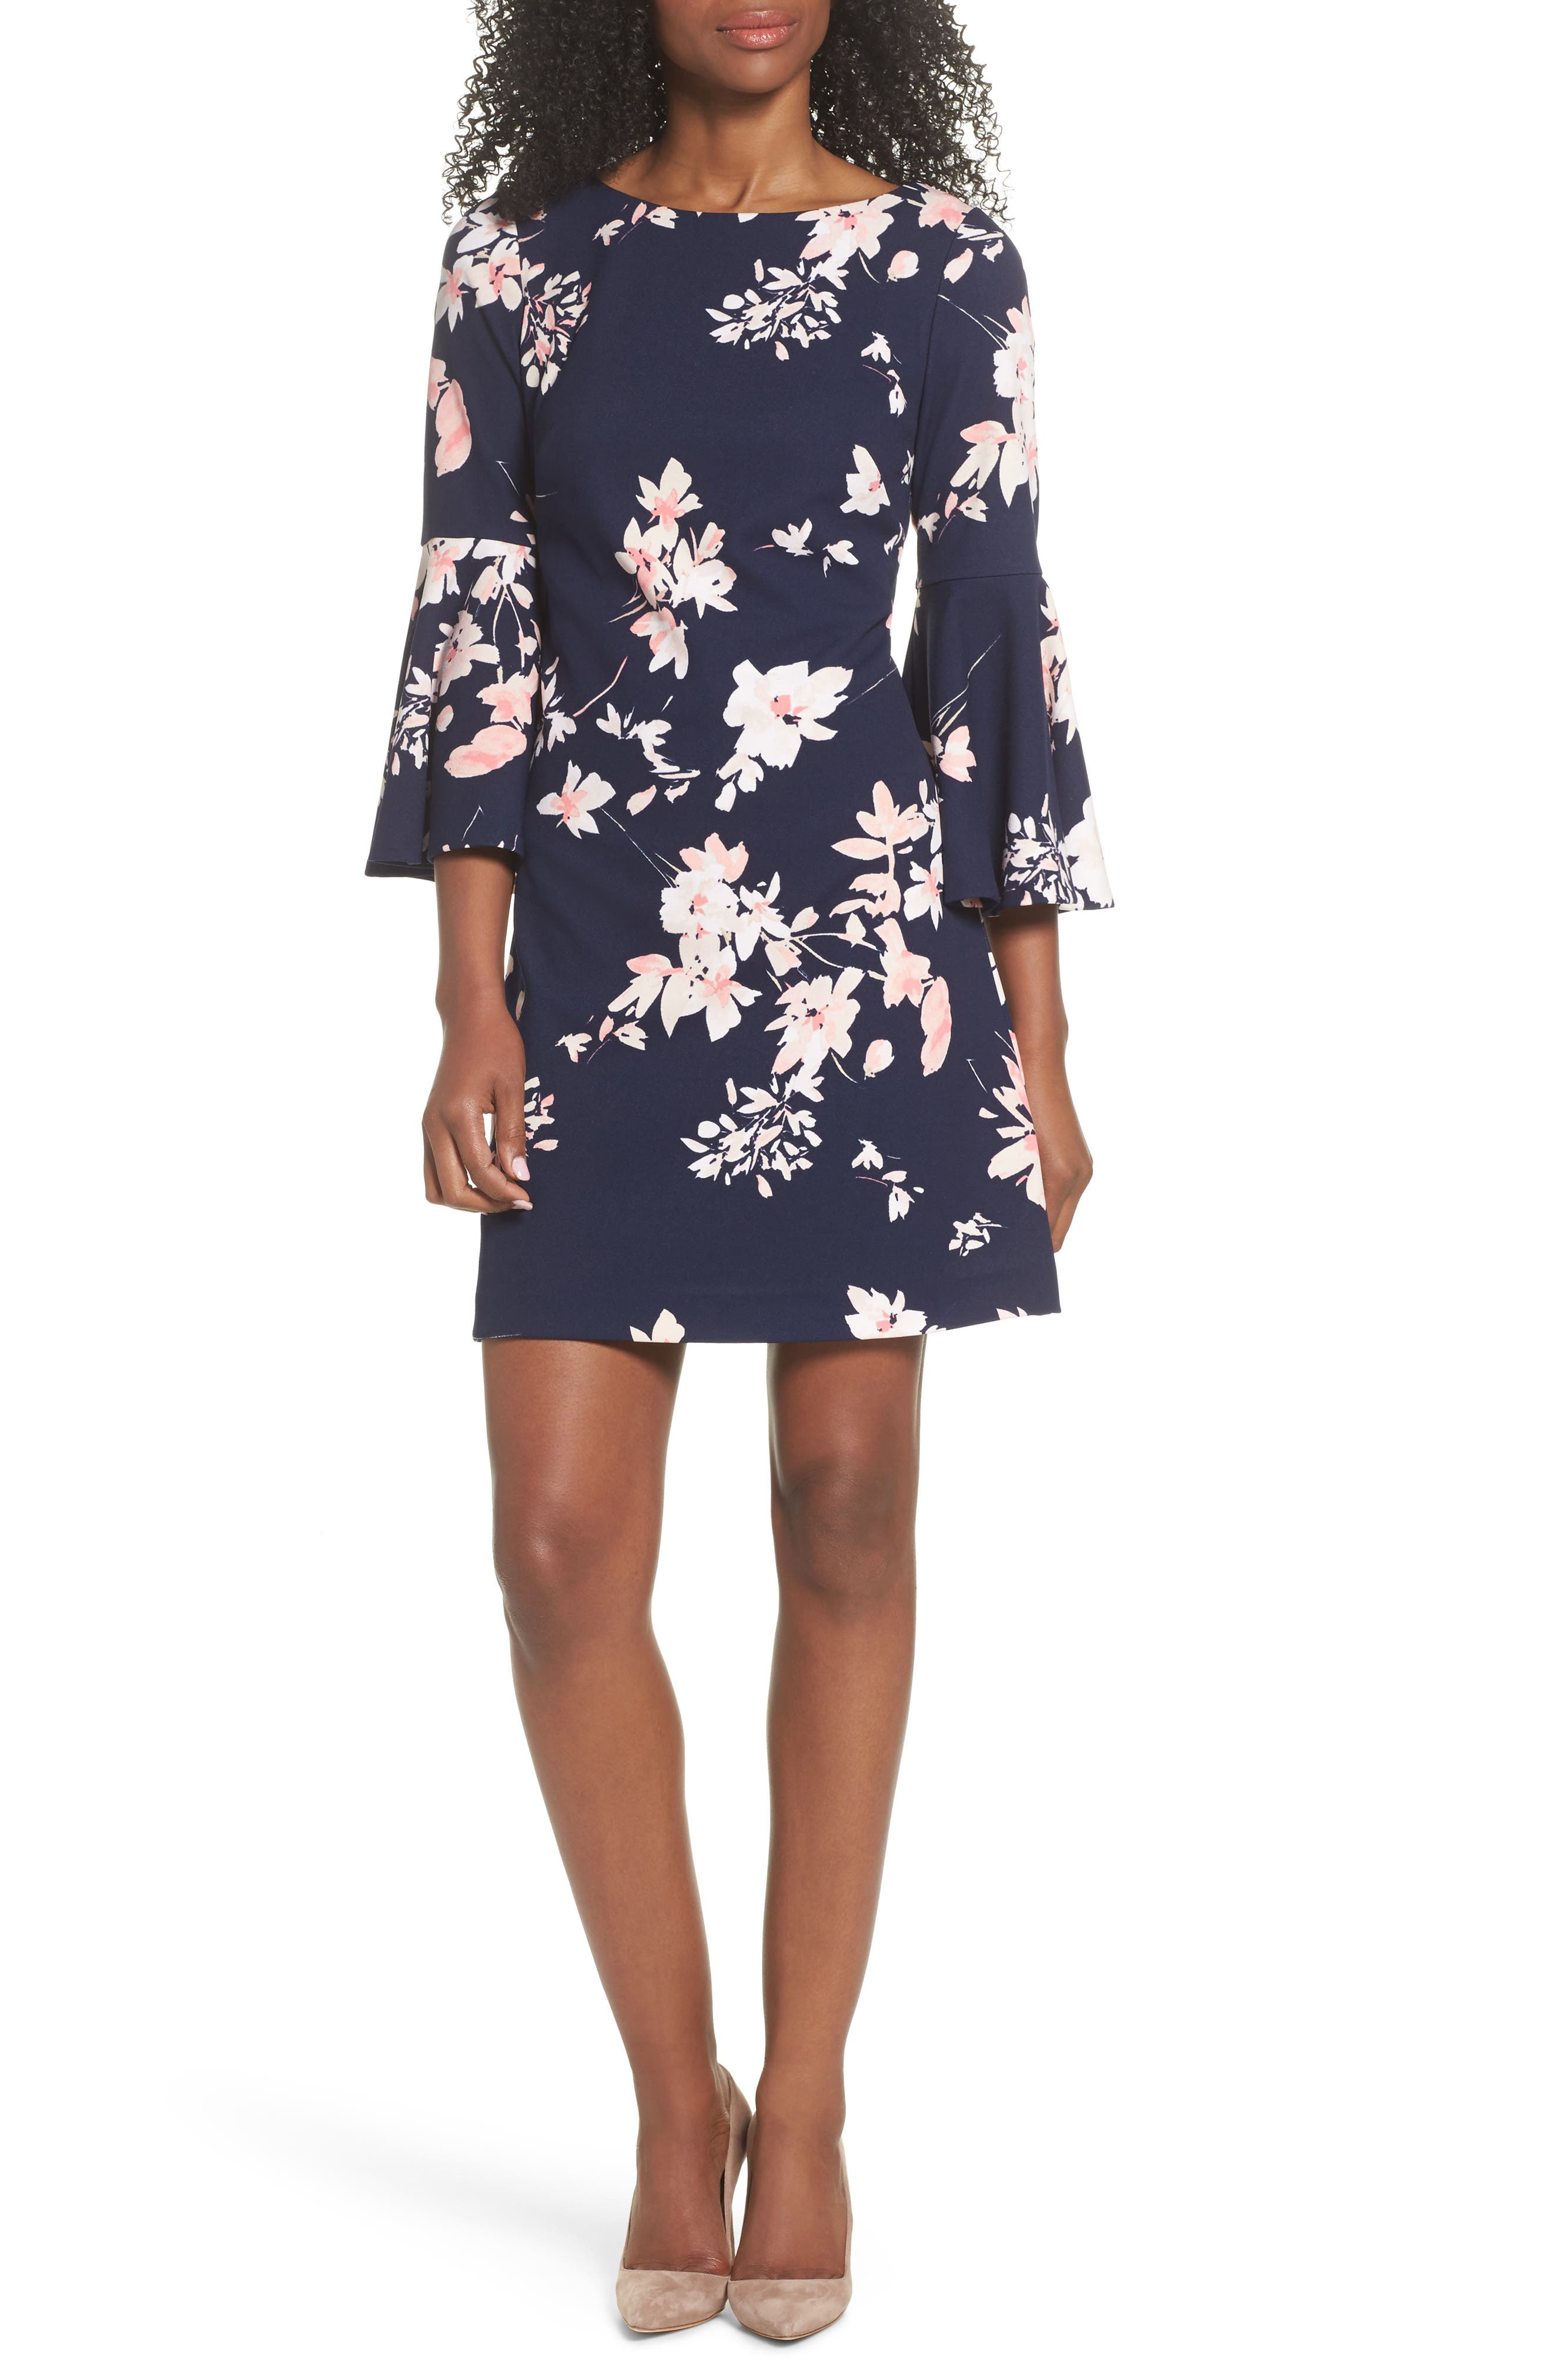 ELIZA J,                             Floral Bell Sleeve Dress,                             Main thumbnail 1, color,                             NAVY/PINK